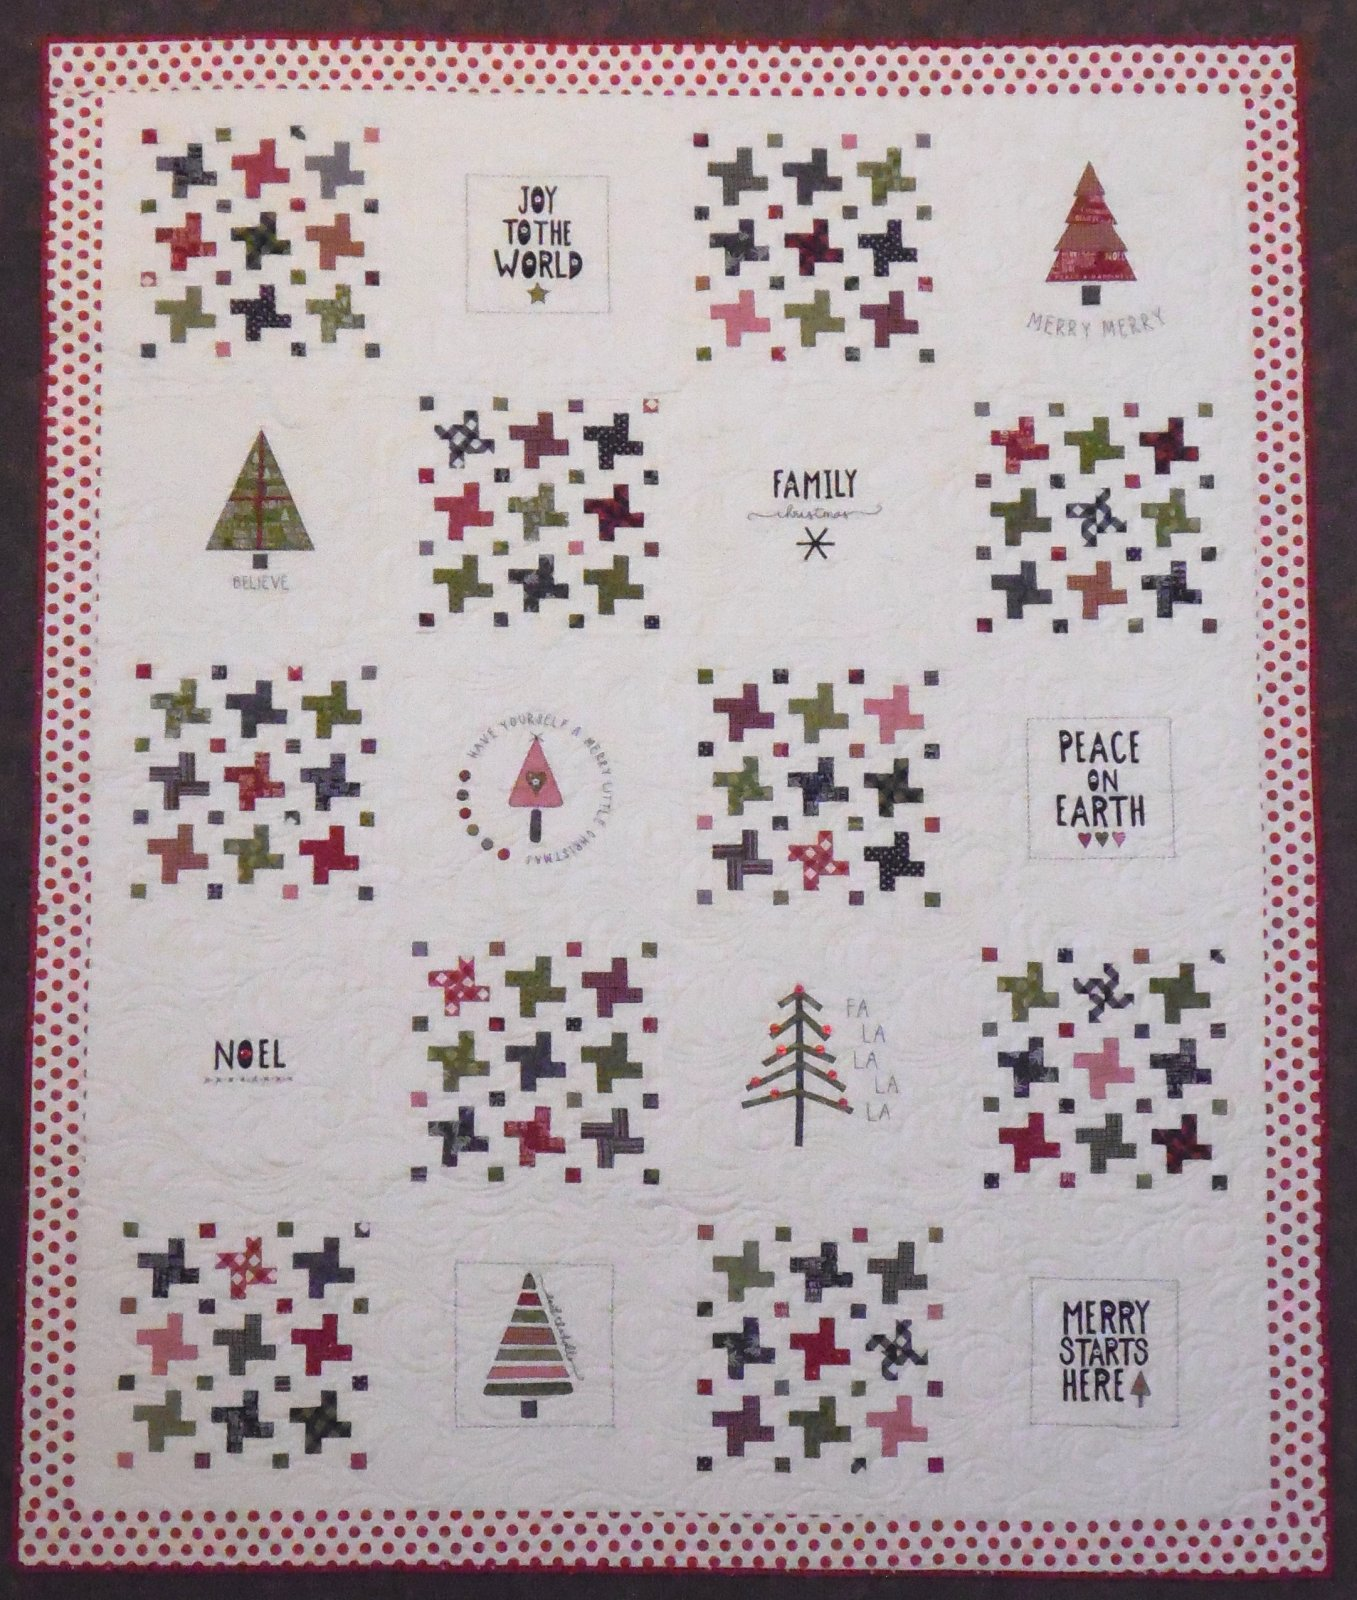 Merry Starts Here Quilt Kit - 64 x 78